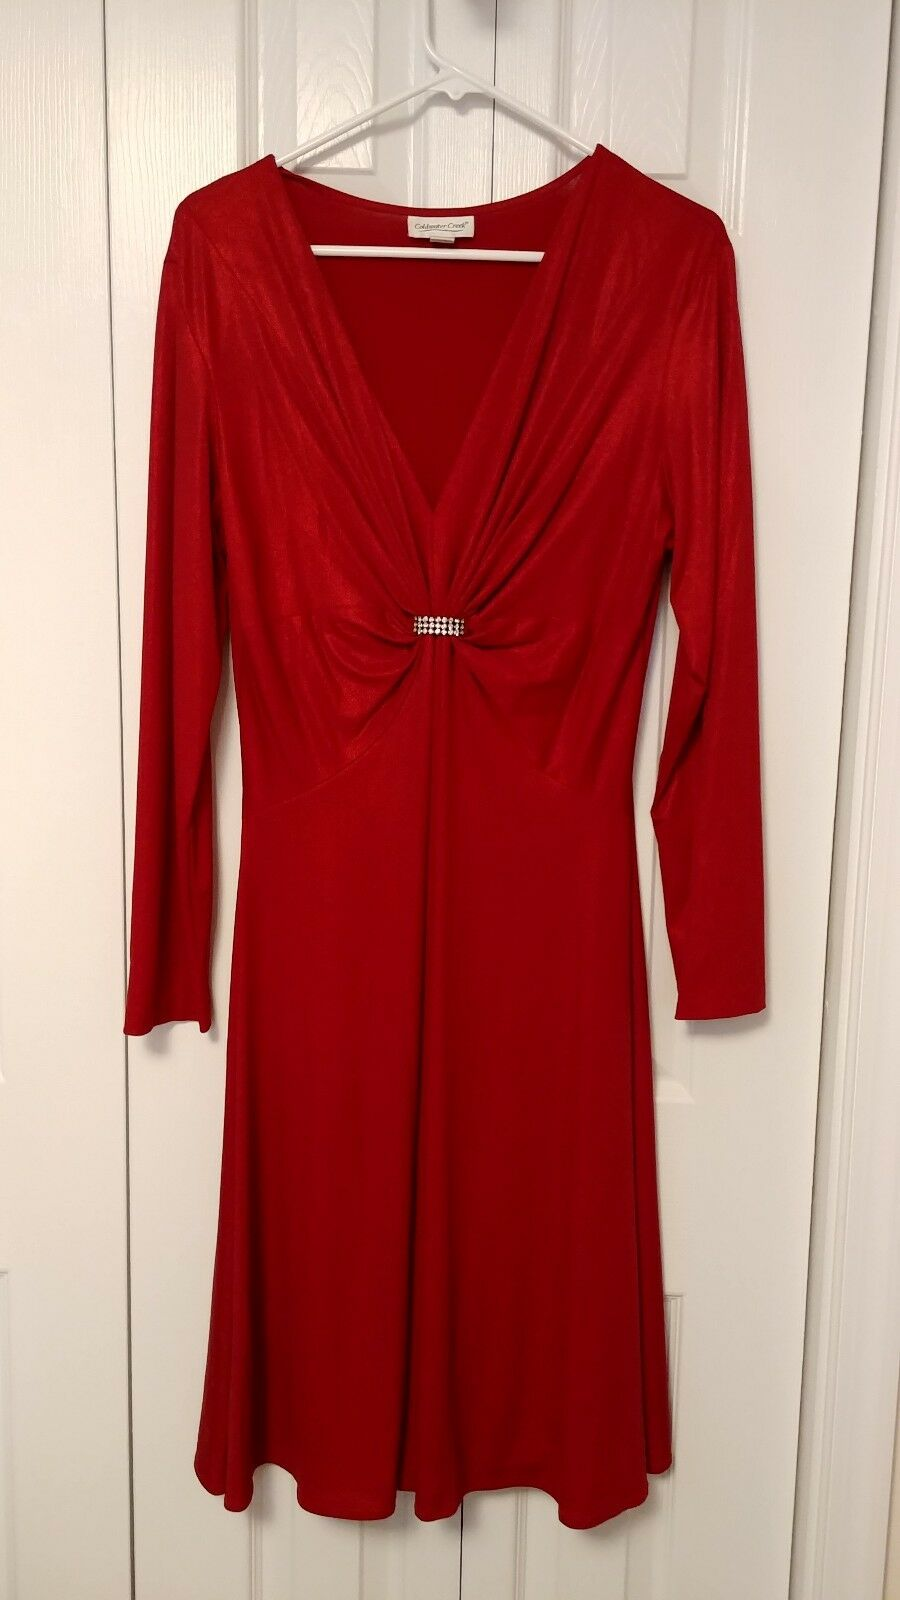 Coldwater Creek rot Dress With Crystal Accent Größe 14 - RN 98516